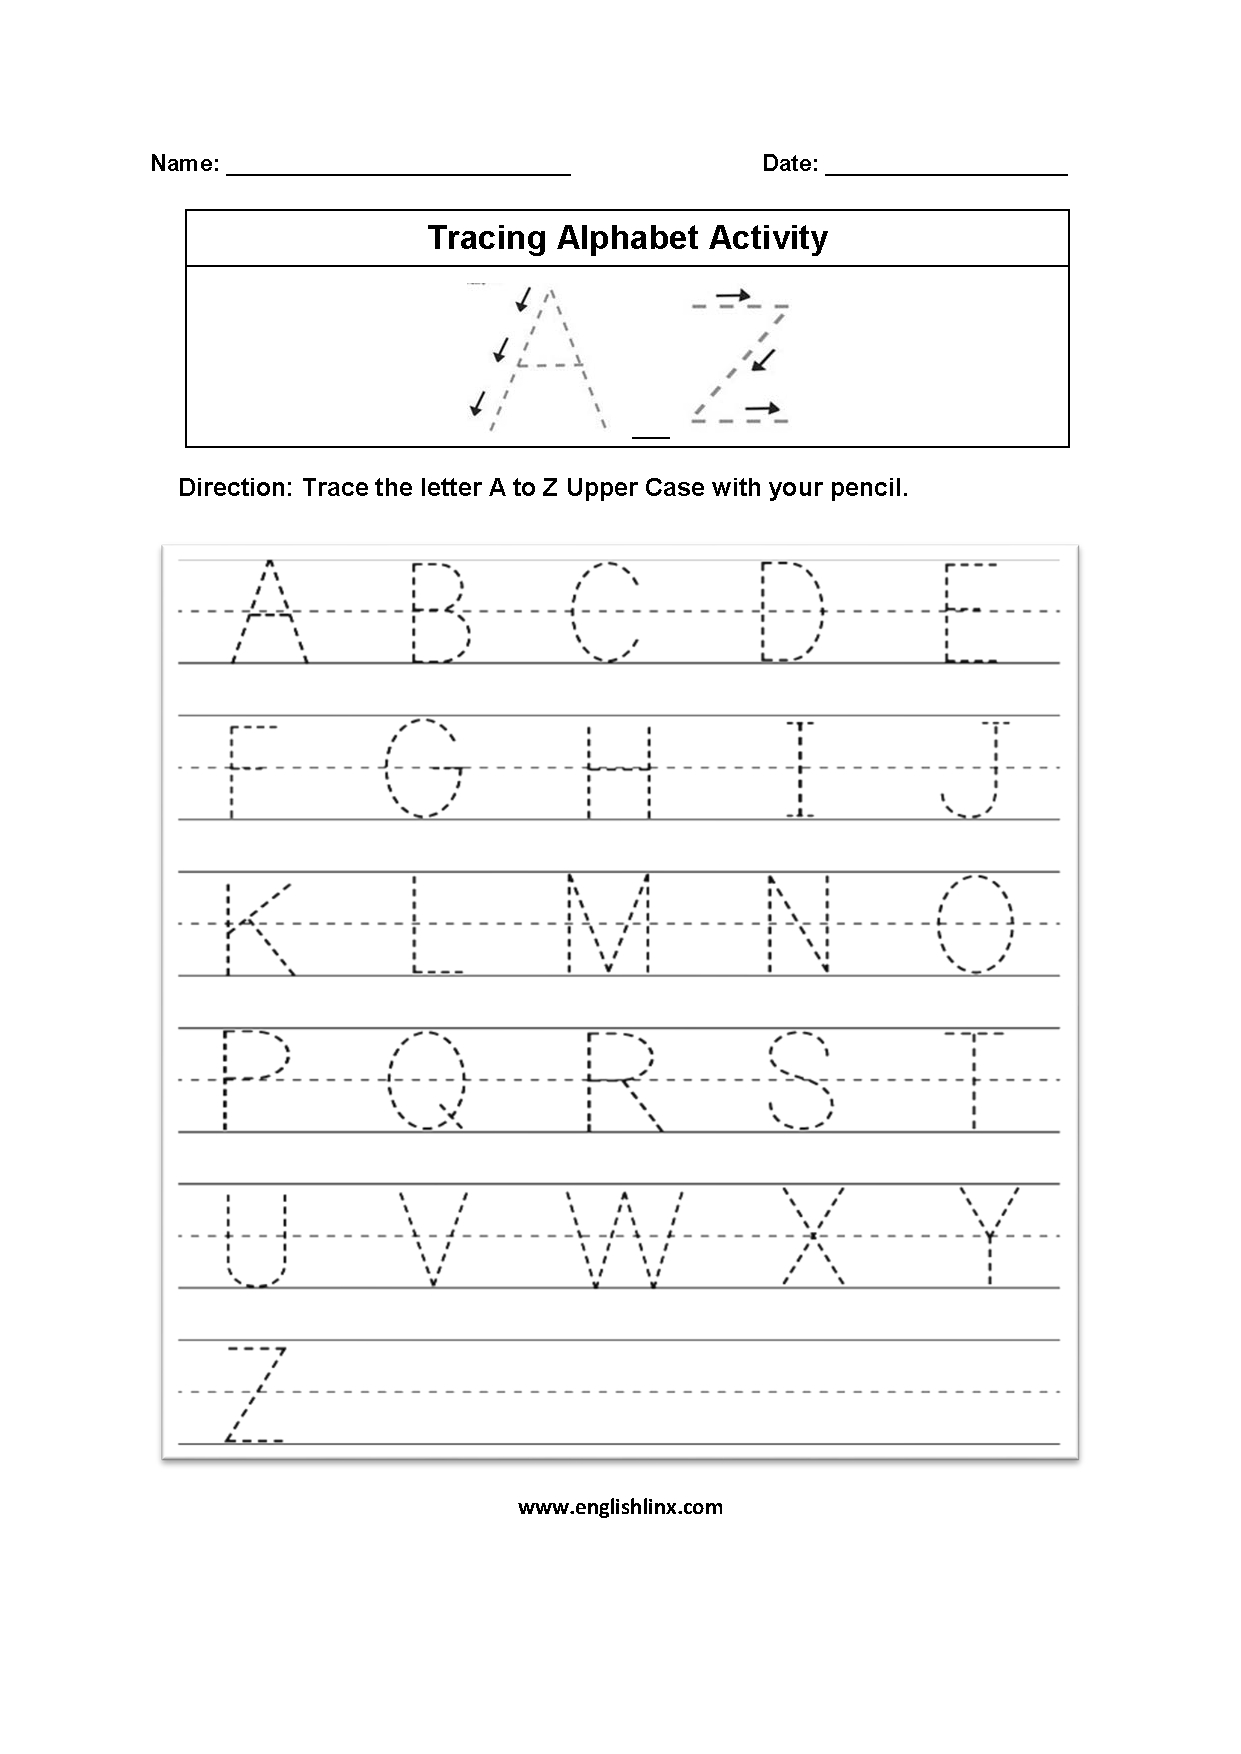 Englishlinx | Alphabet Worksheets with A-Z Tracing Letters Worksheets